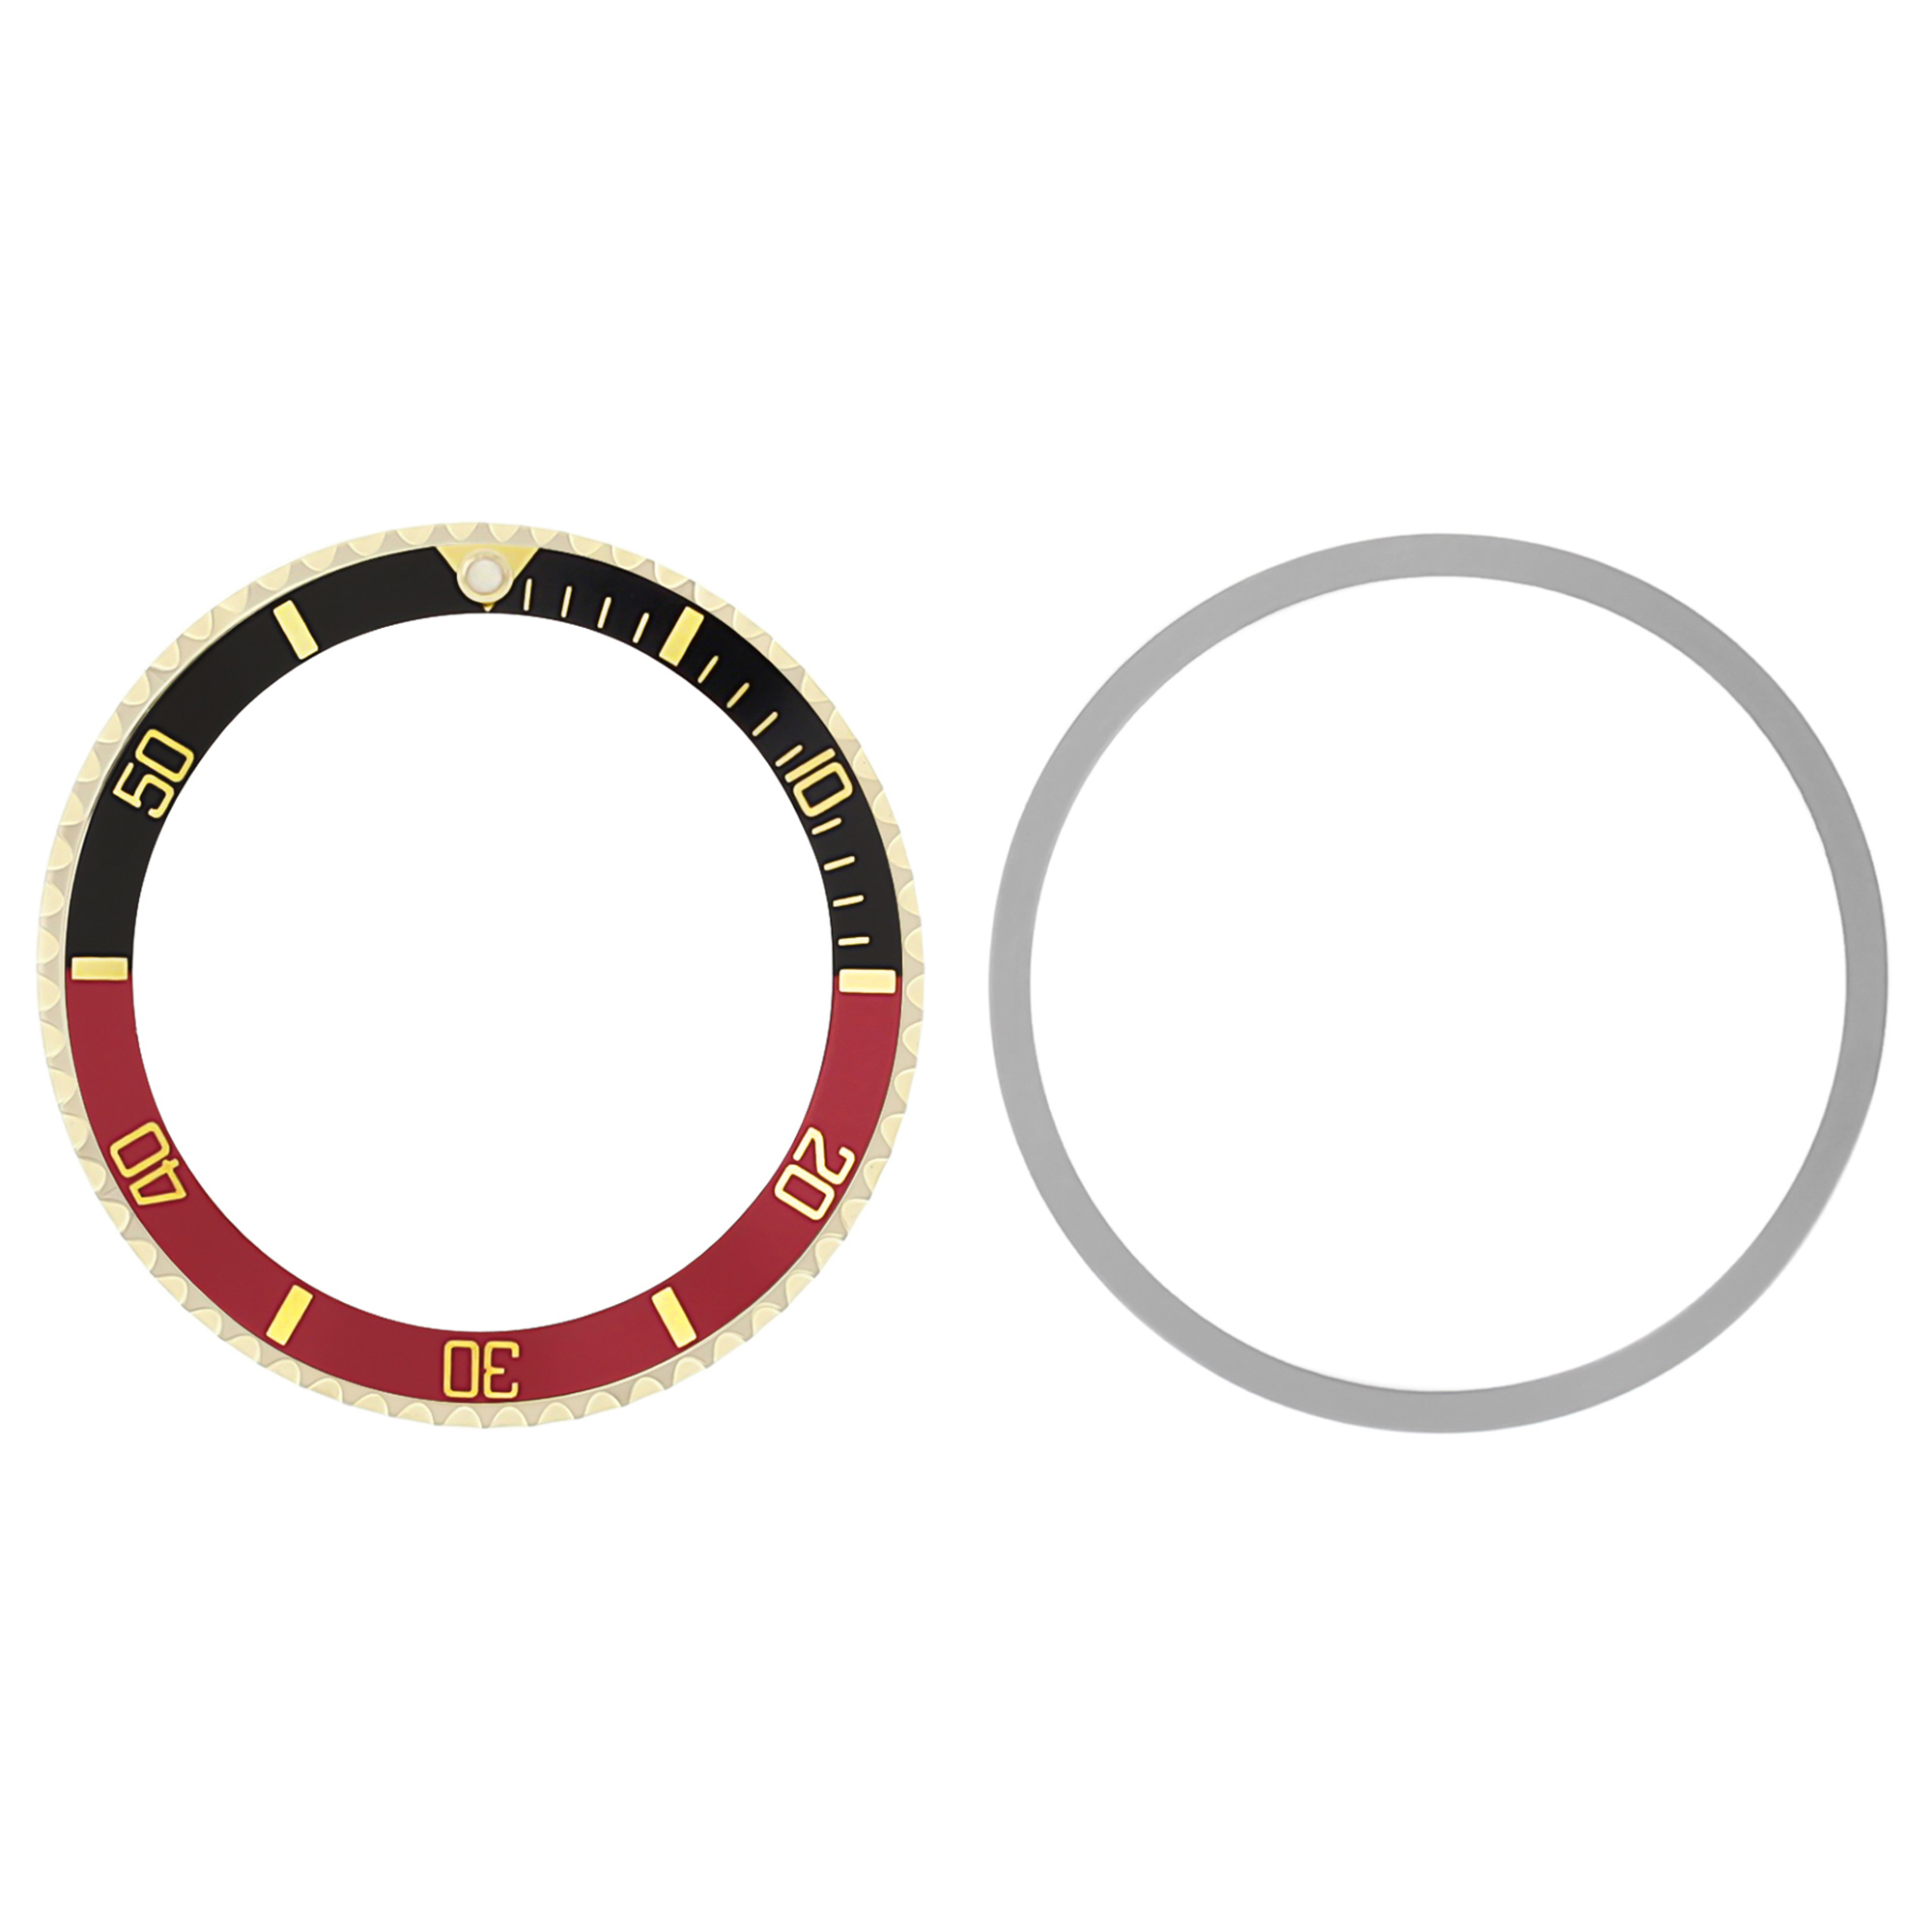 BEZEL+INSERT FOR ROLEX SUBMARINER 18KY REAL GOLD 5508  5512  5513 1680 BLACK/RED